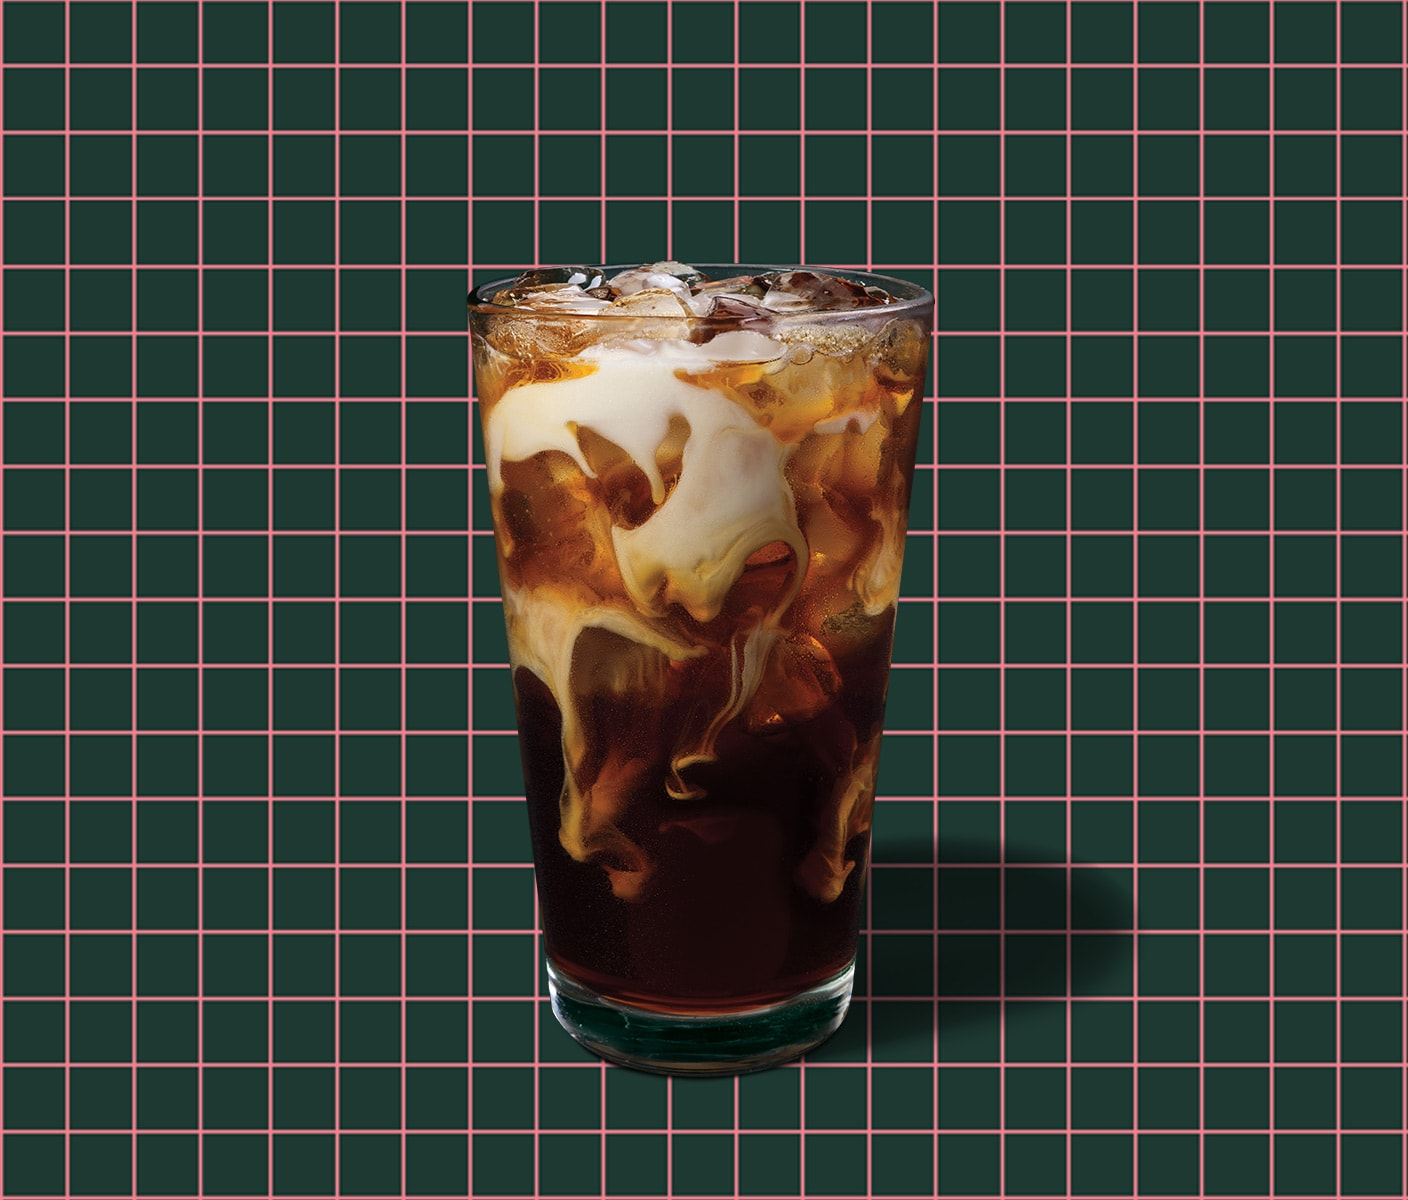 A Vanilla Sweet Cream Cold Brew sits atop a grid background.